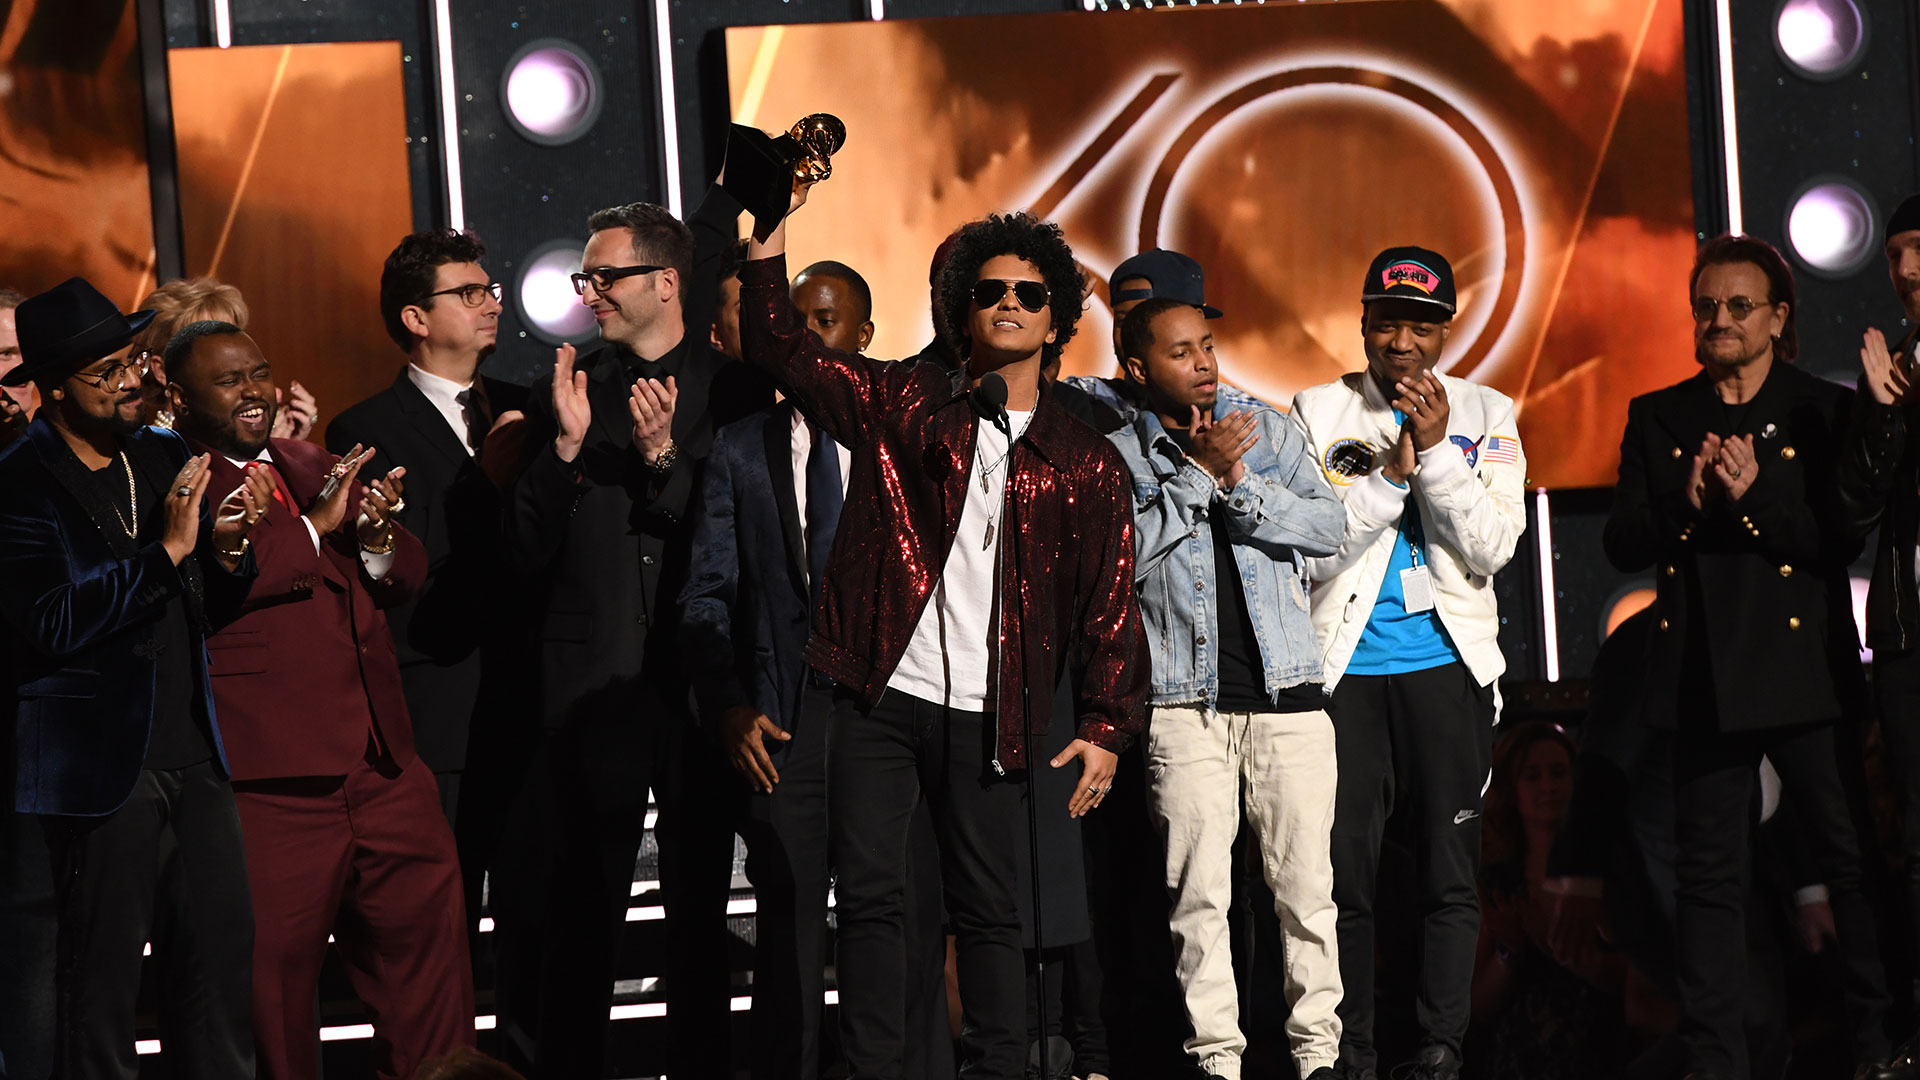 Bruno Mars wins Album of the Year for 24K Magic at the 60th Annual GRAMMY Awards.